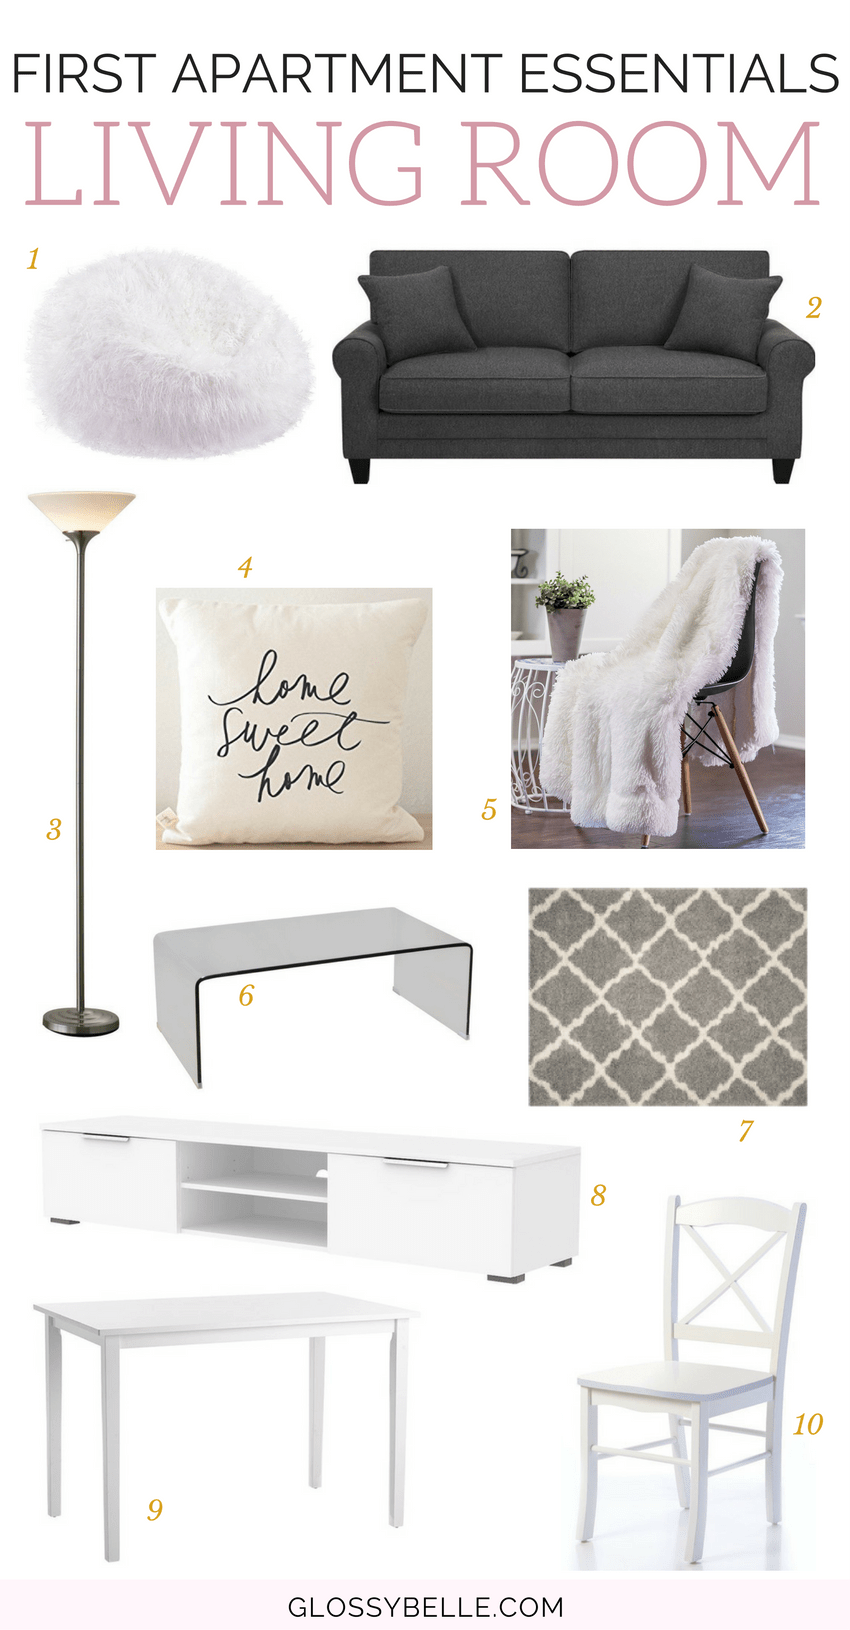 If you're about to move out into your first apartment, here are the most important apartment essentials you'll need to be ready to move out on your own. | adulting | move out for the first time | moving out | independence | college essentials | college dorm | room essentials | home decor | living room essentials #apartment #furniture #furnitureideas #adulting #livingroomideas #livingroomdecor #livingroomfurniture #livingroom